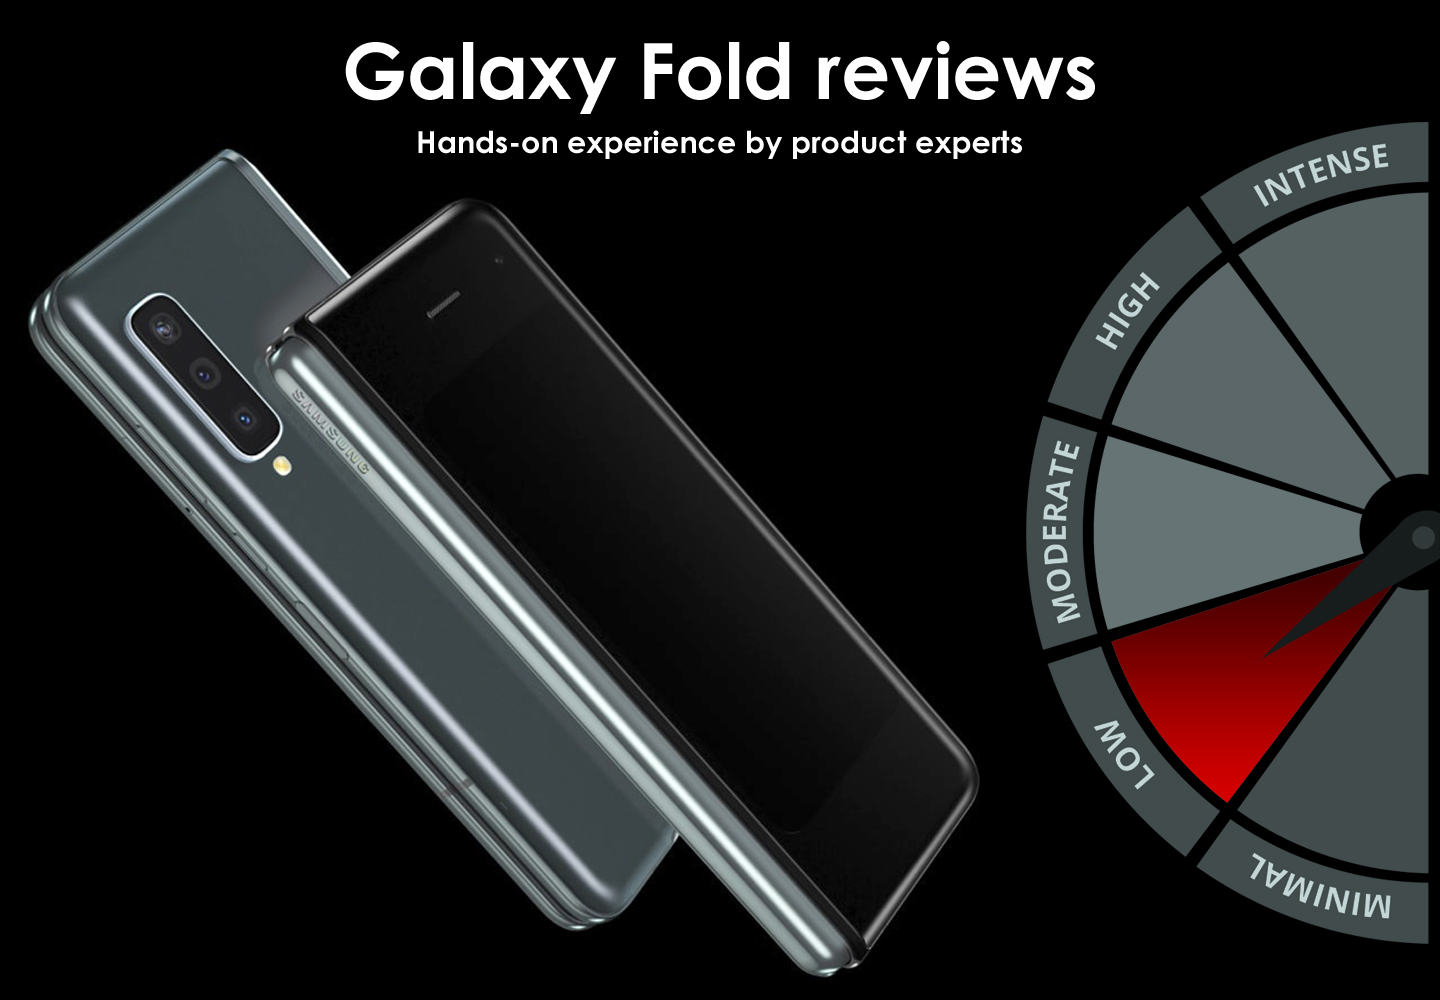 Galaxy Fold product reviews